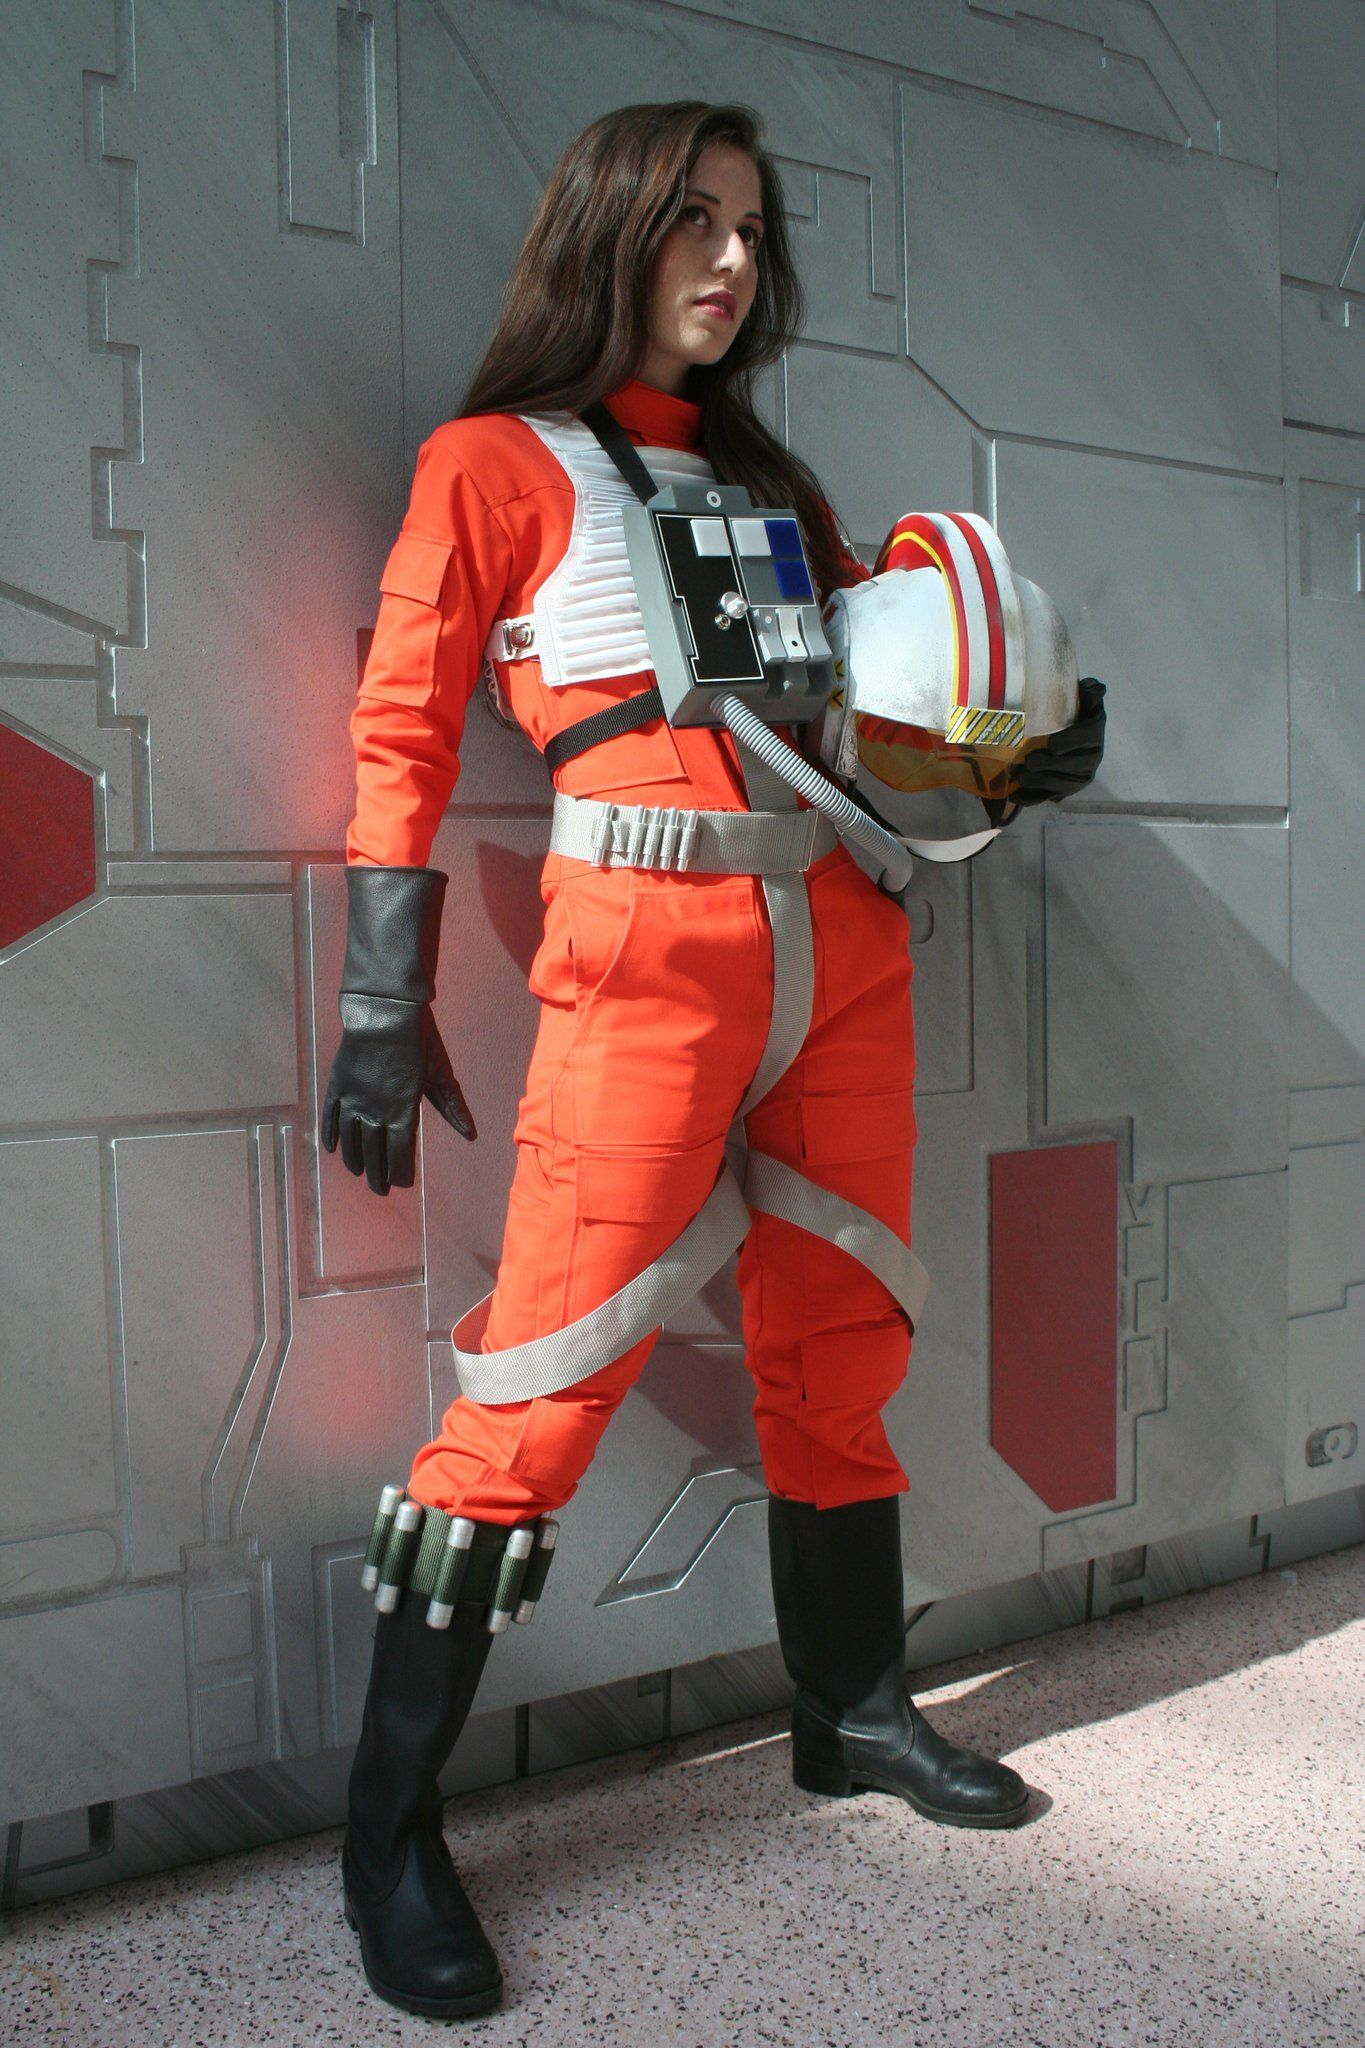 jaina solo cosplay - Google Search                                                                                                                                                                                 More